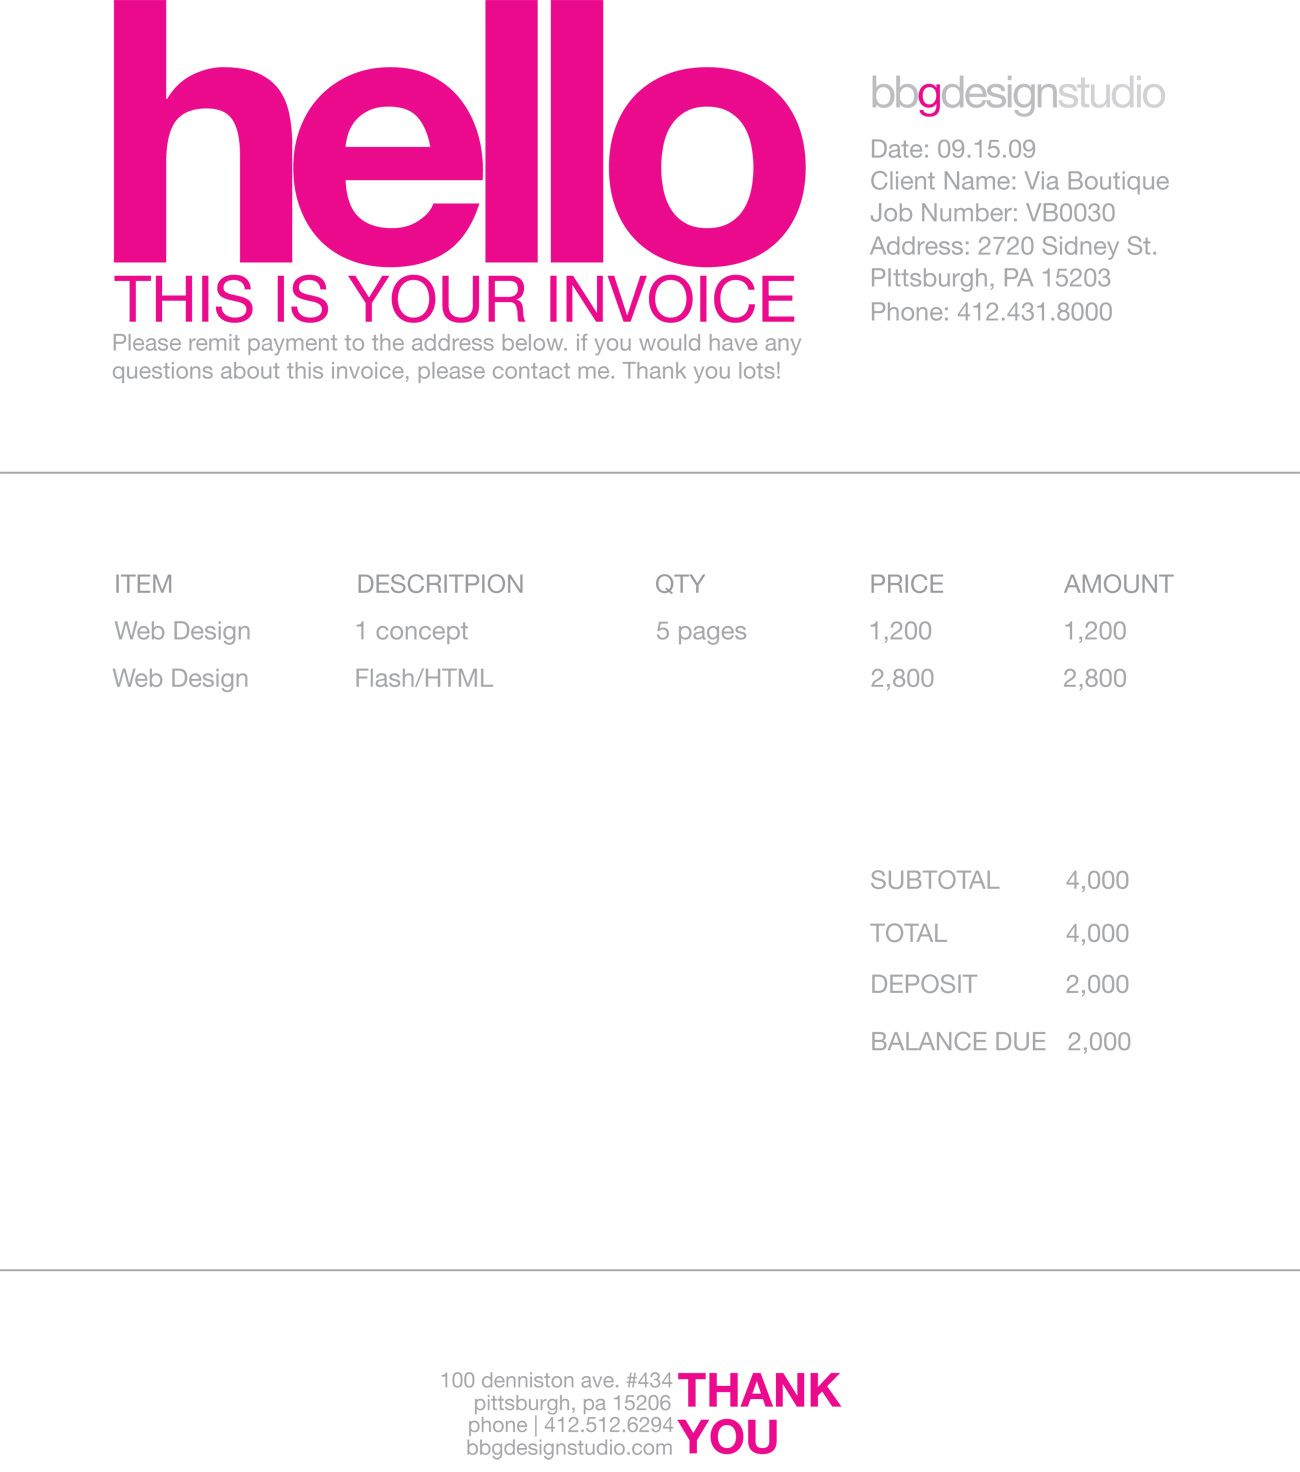 Howcanigettallerus  Stunning  Images About Invoice Design On Pinterest With Marvelous Taxi Receipt Format India Besides App For Expense Receipts Furthermore Af Hand Receipt With Captivating Receipt For Money Received Template Also Receipt Book With Carbon Copy In Addition Non Tax Receipts And Tata Aia Premium Payment Receipt As Well As Jet Blue Receipt Additionally Receipt In Portuguese From Pinterestcom With Howcanigettallerus  Marvelous  Images About Invoice Design On Pinterest With Captivating Taxi Receipt Format India Besides App For Expense Receipts Furthermore Af Hand Receipt And Stunning Receipt For Money Received Template Also Receipt Book With Carbon Copy In Addition Non Tax Receipts From Pinterestcom